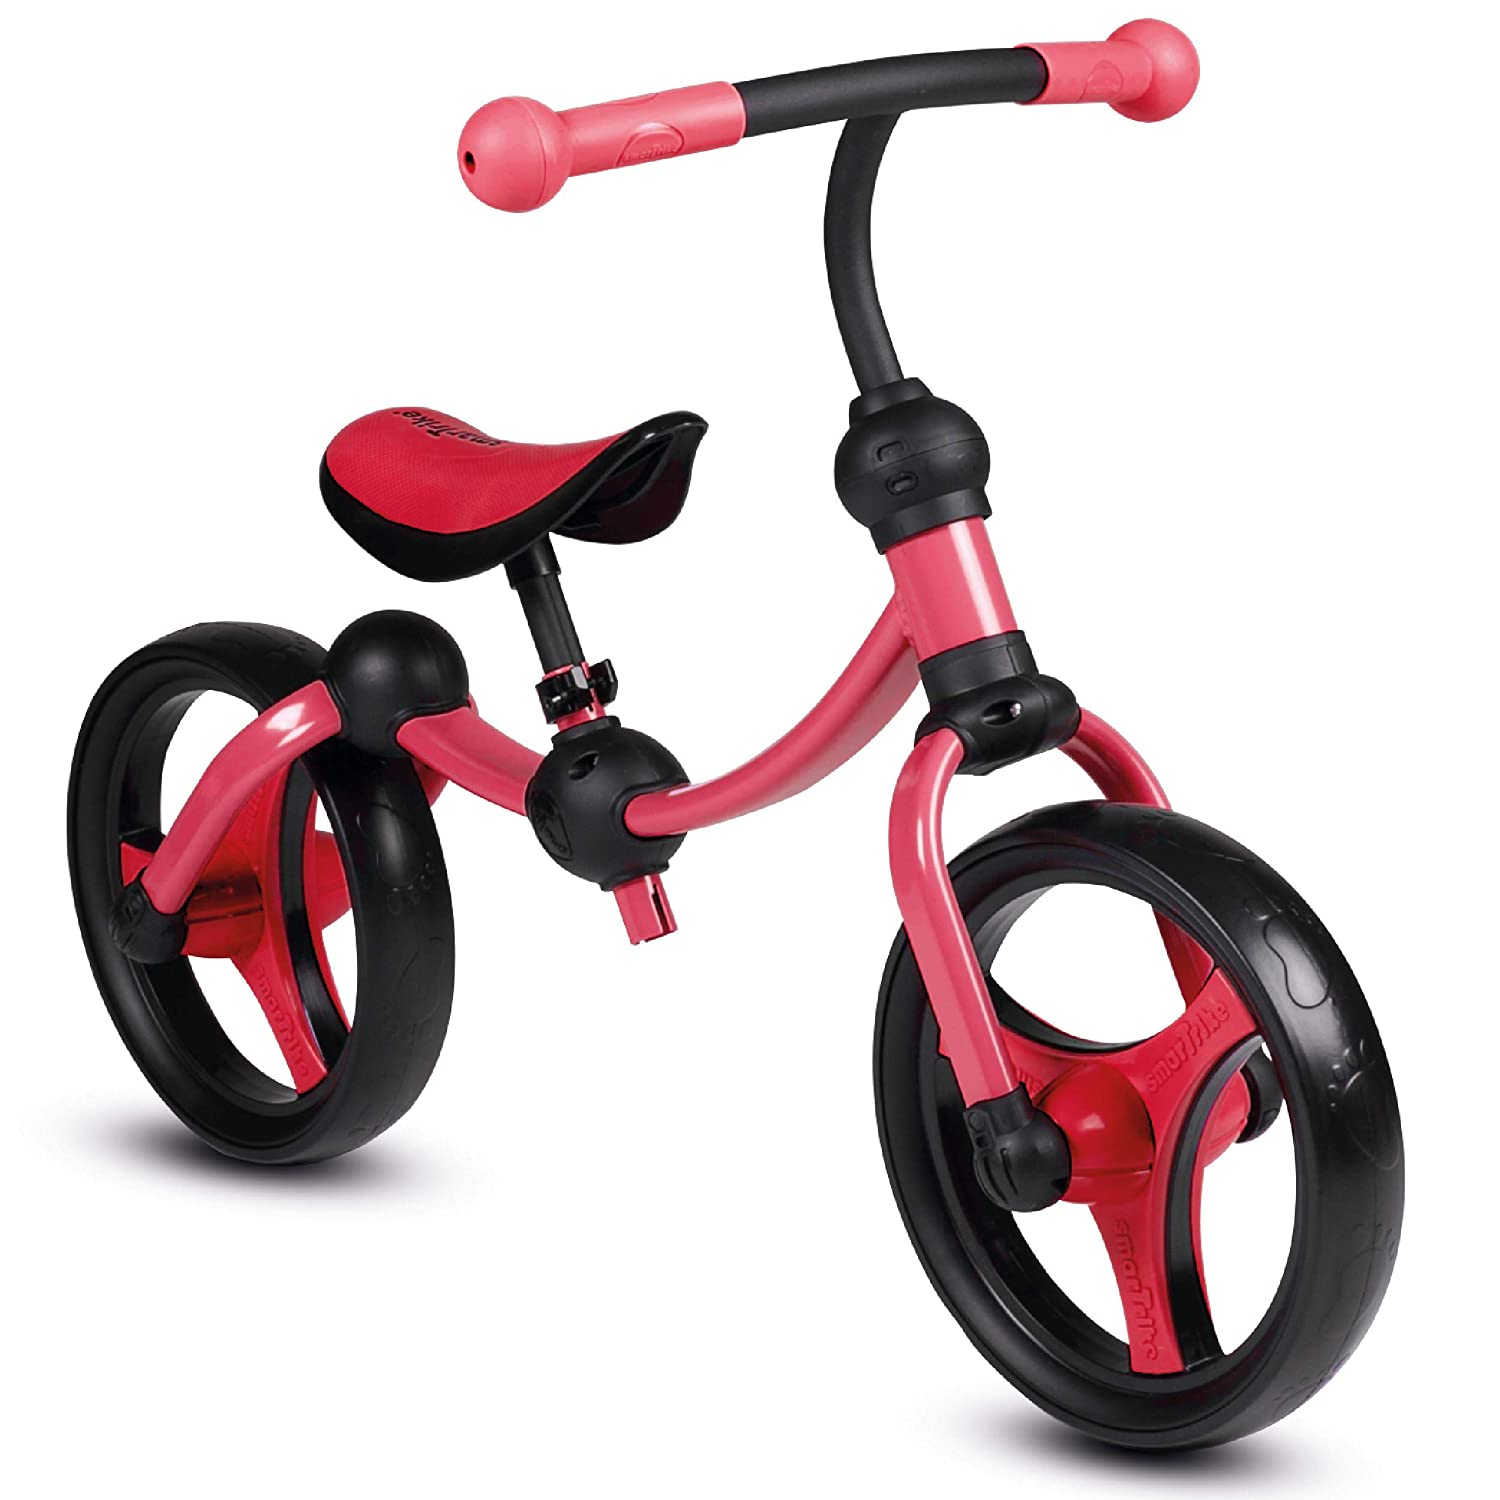 smarTrike Balance Bike 2-in-1 Adjustable Toddler Running Bike - Rubber Wheels and No Pedals Perfect First Bicycle for Ages 2-5 (Red) smart trike 105-0100